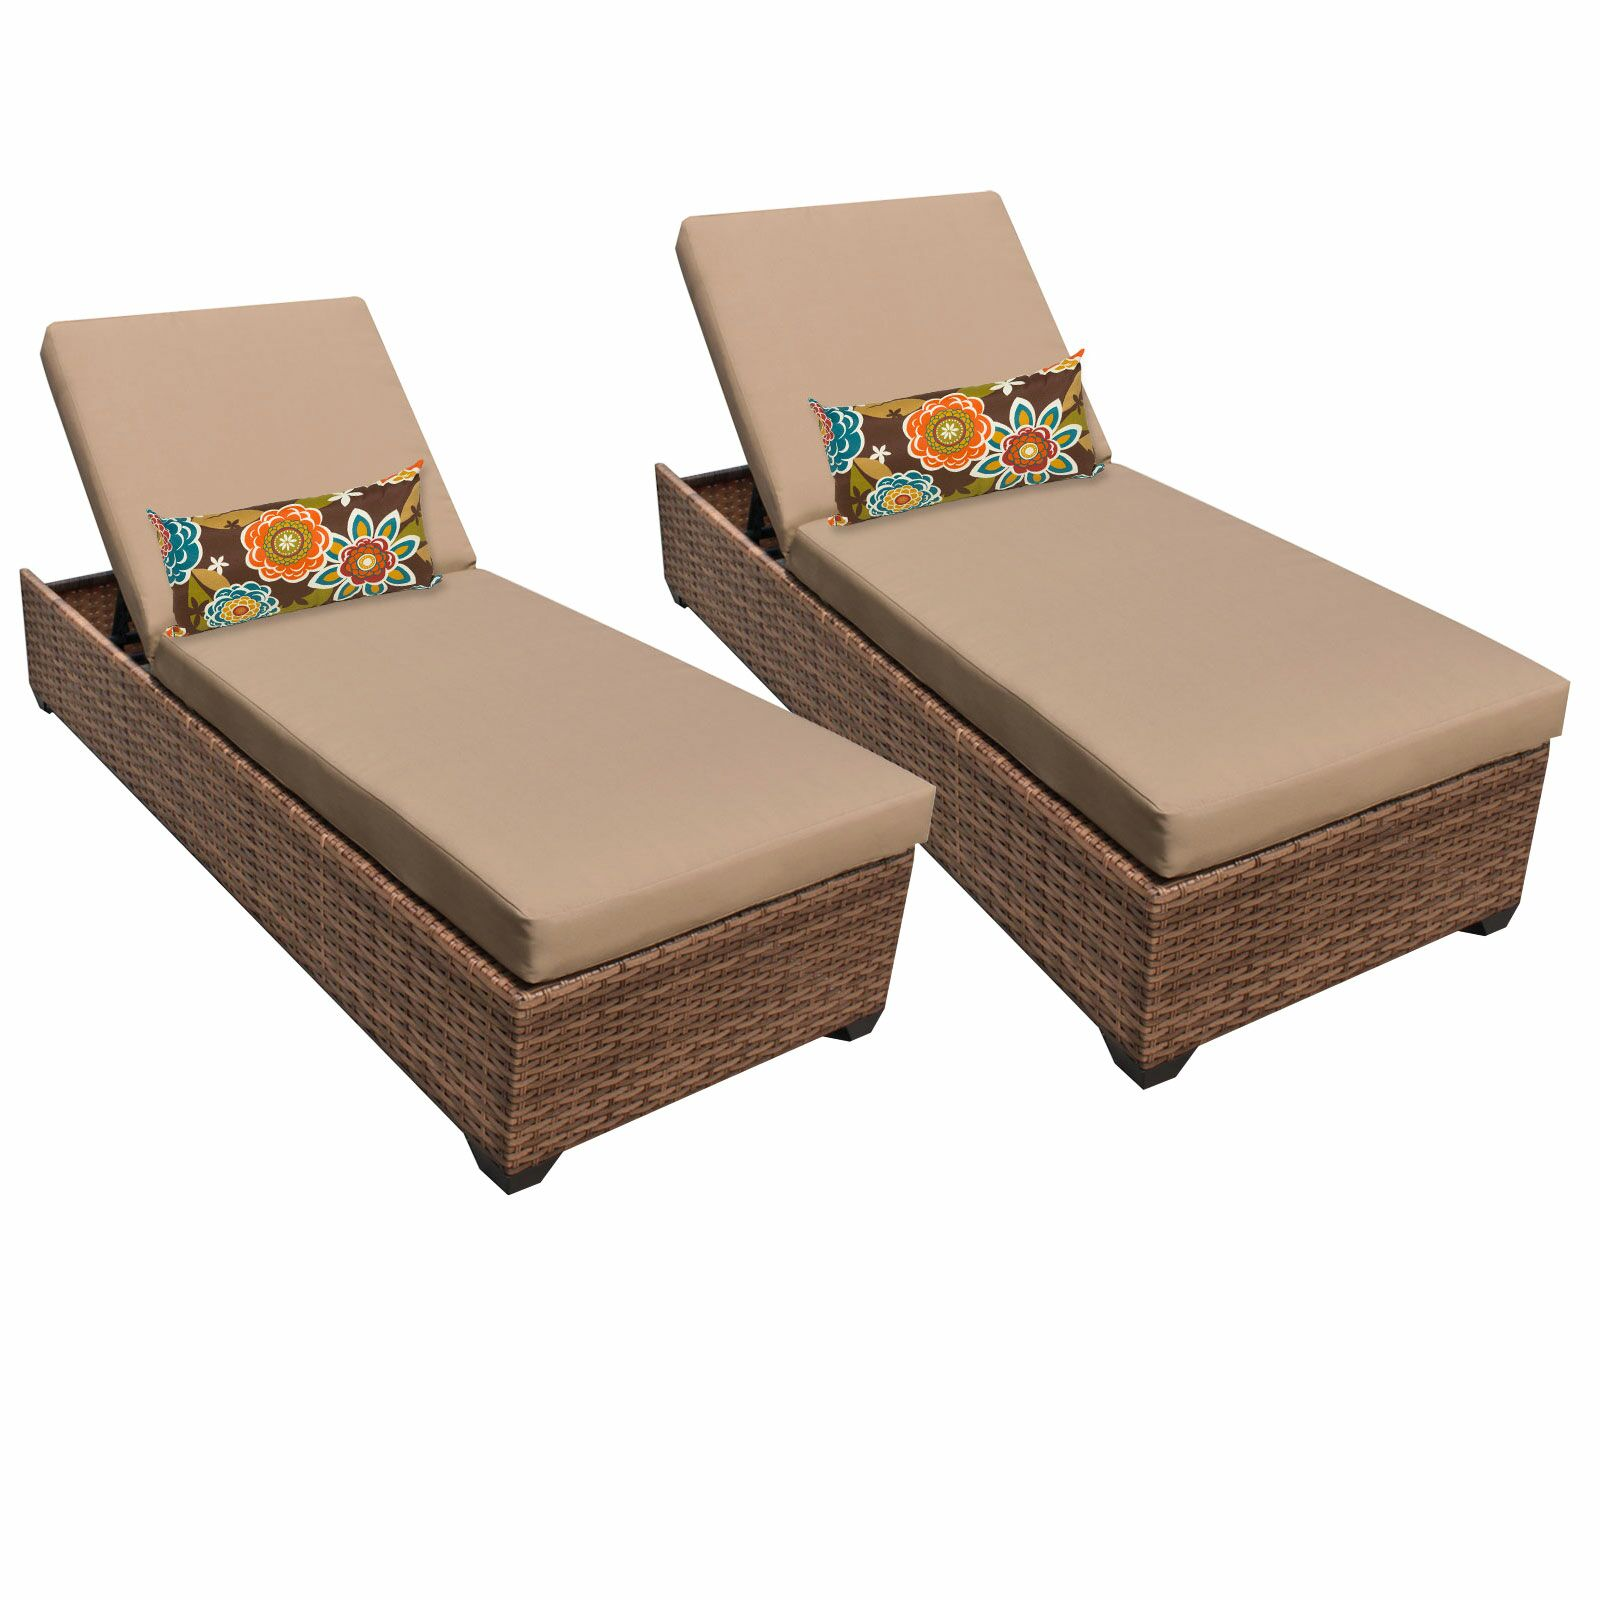 Asellus Chaise Lounge with Cushion Color: Wheat